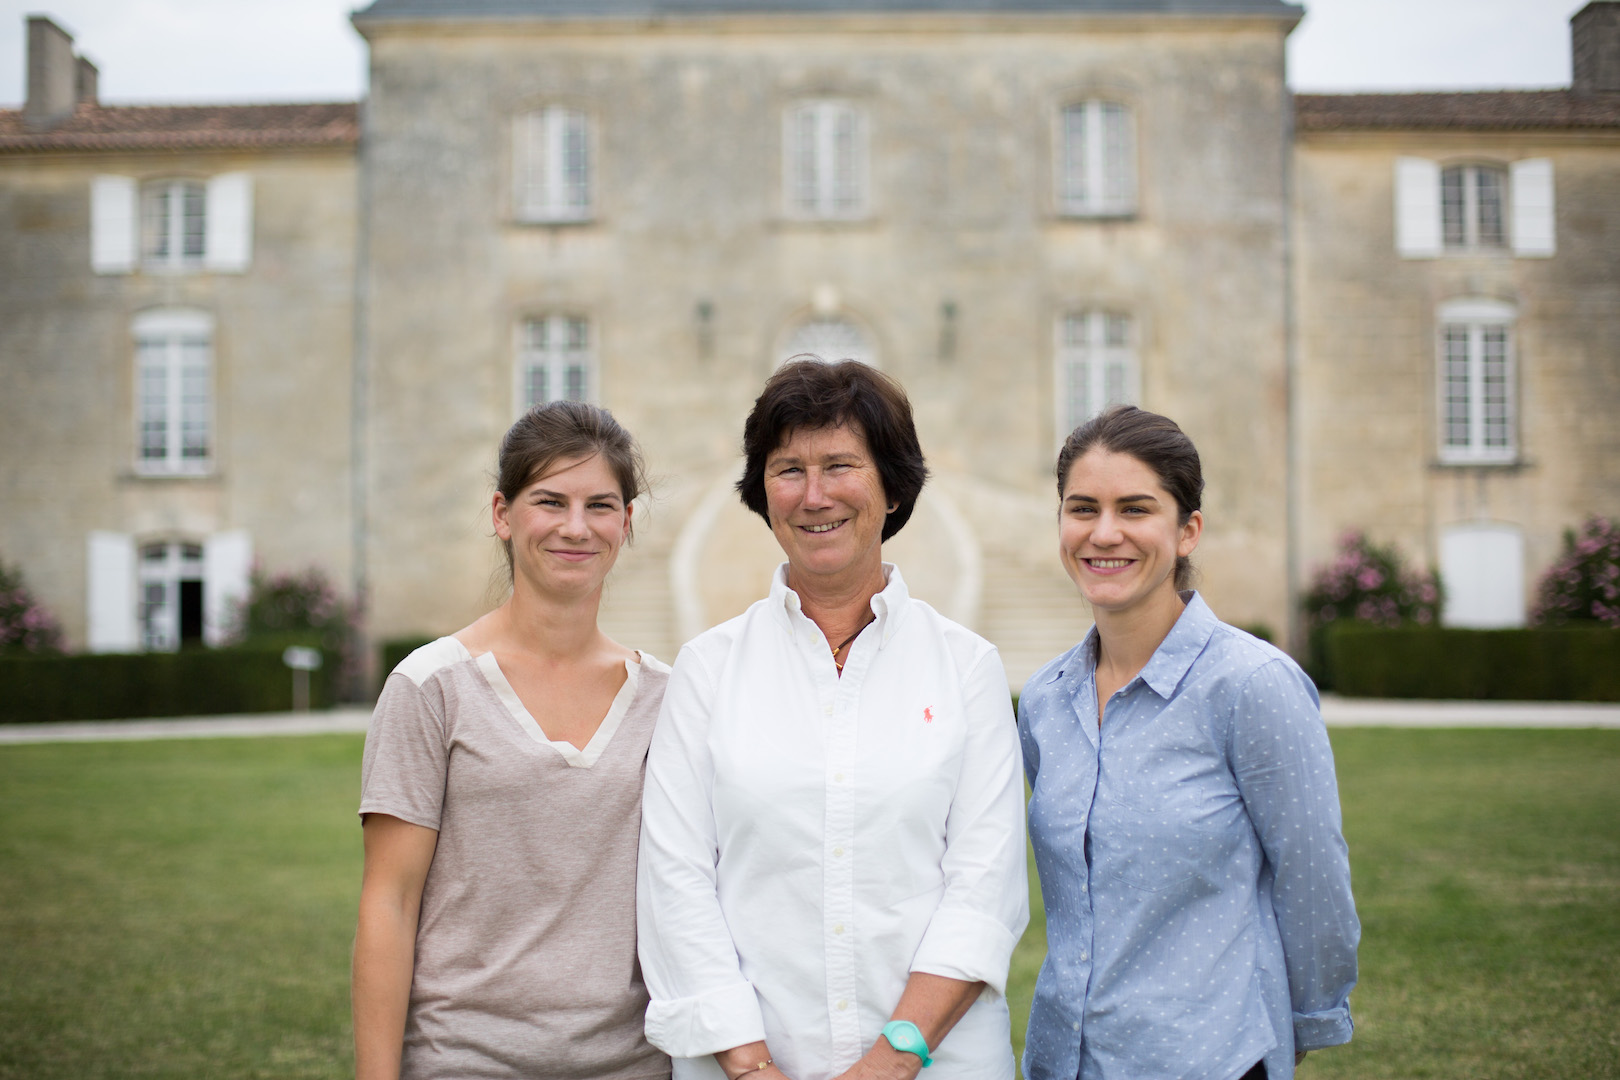 chateau-des-arras-three-women-making-merlot-bordeaux-superieur-red-wine